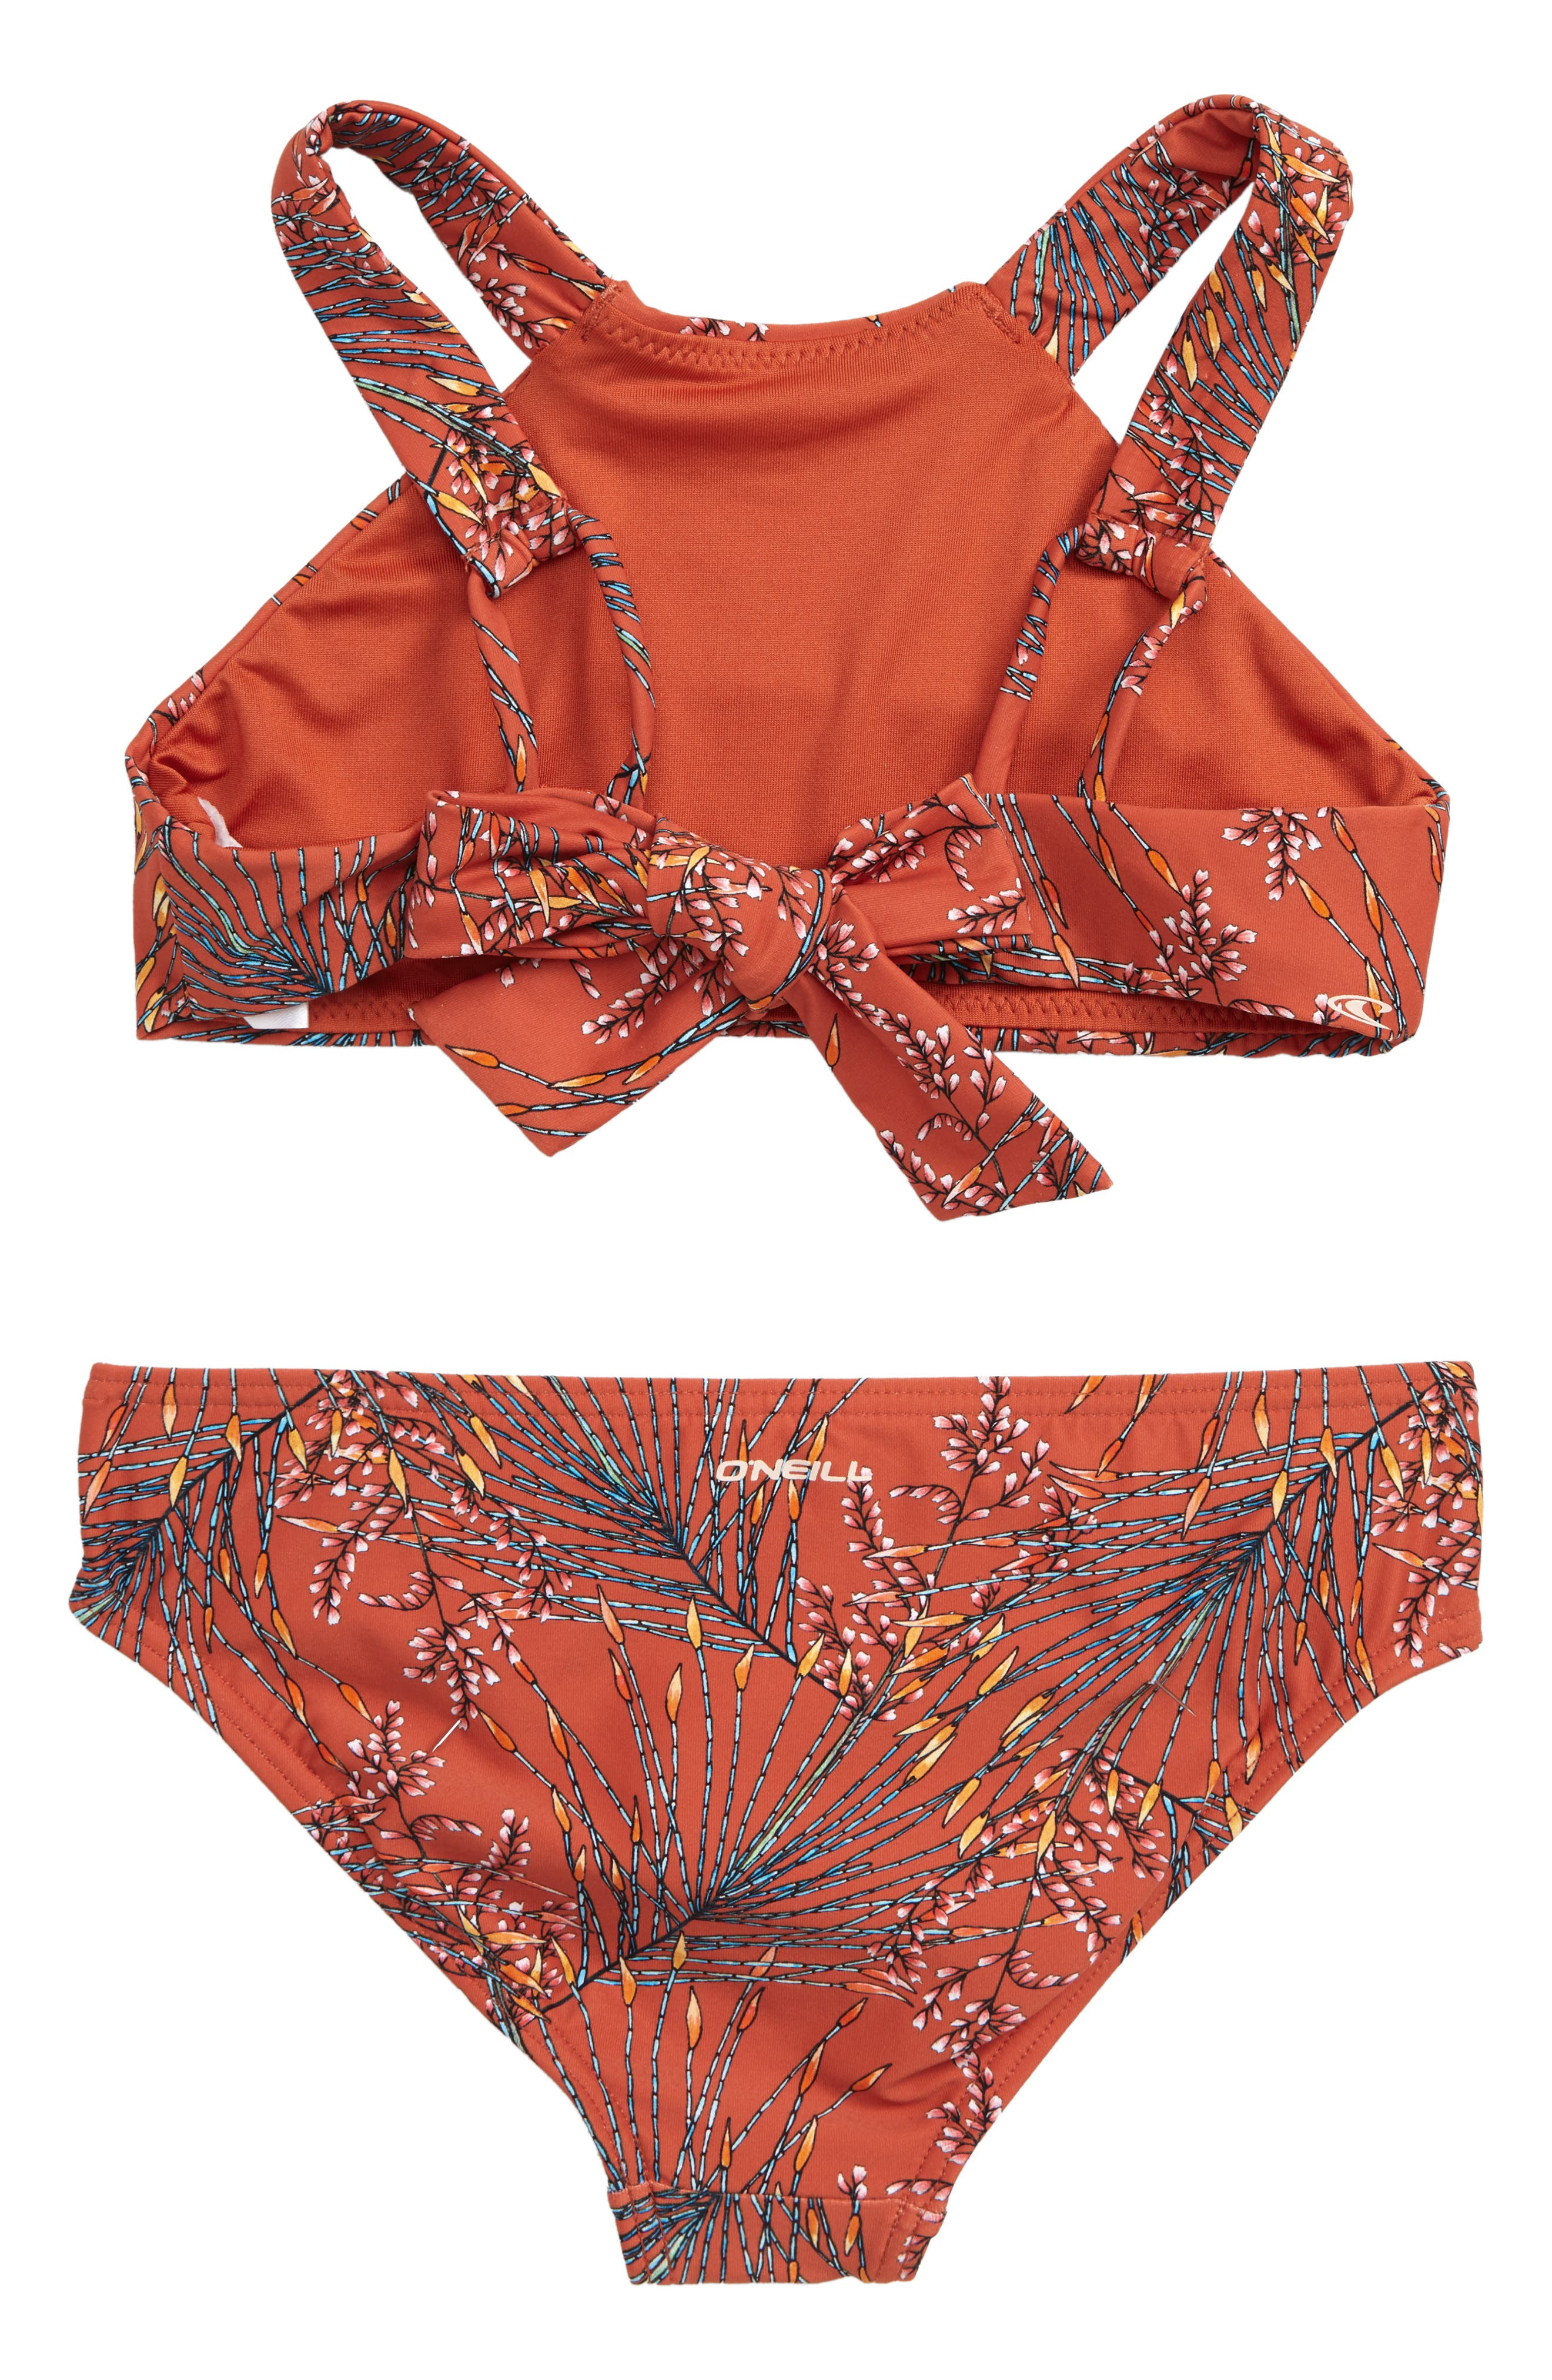 O'NEILL, Prism Two-Piece Halter Swimsuit, Alternate thumbnail 2, color, KOI